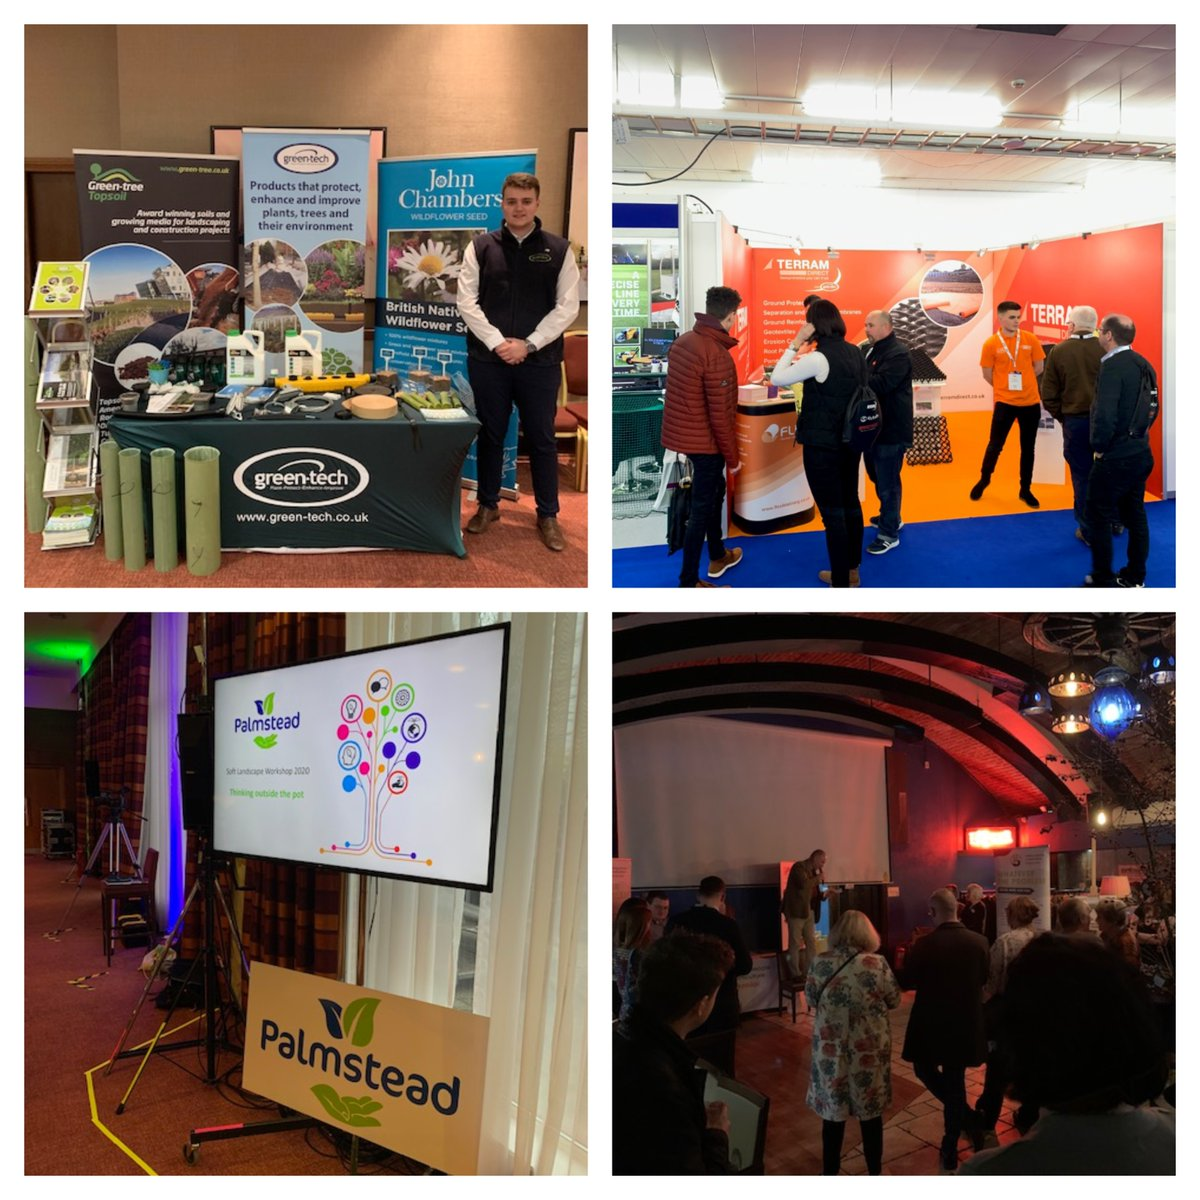 It has been a very busy week for #TeamGT, as the team have been to several events all over the country!  We would like to thank @BIGGALtd, @palmsteadmedia and @PerennialGRBS for the fantastic events we attended!  We will be at many more events in 2020 so look out for us #BTME2020pic.twitter.com/pouWsK8p2l